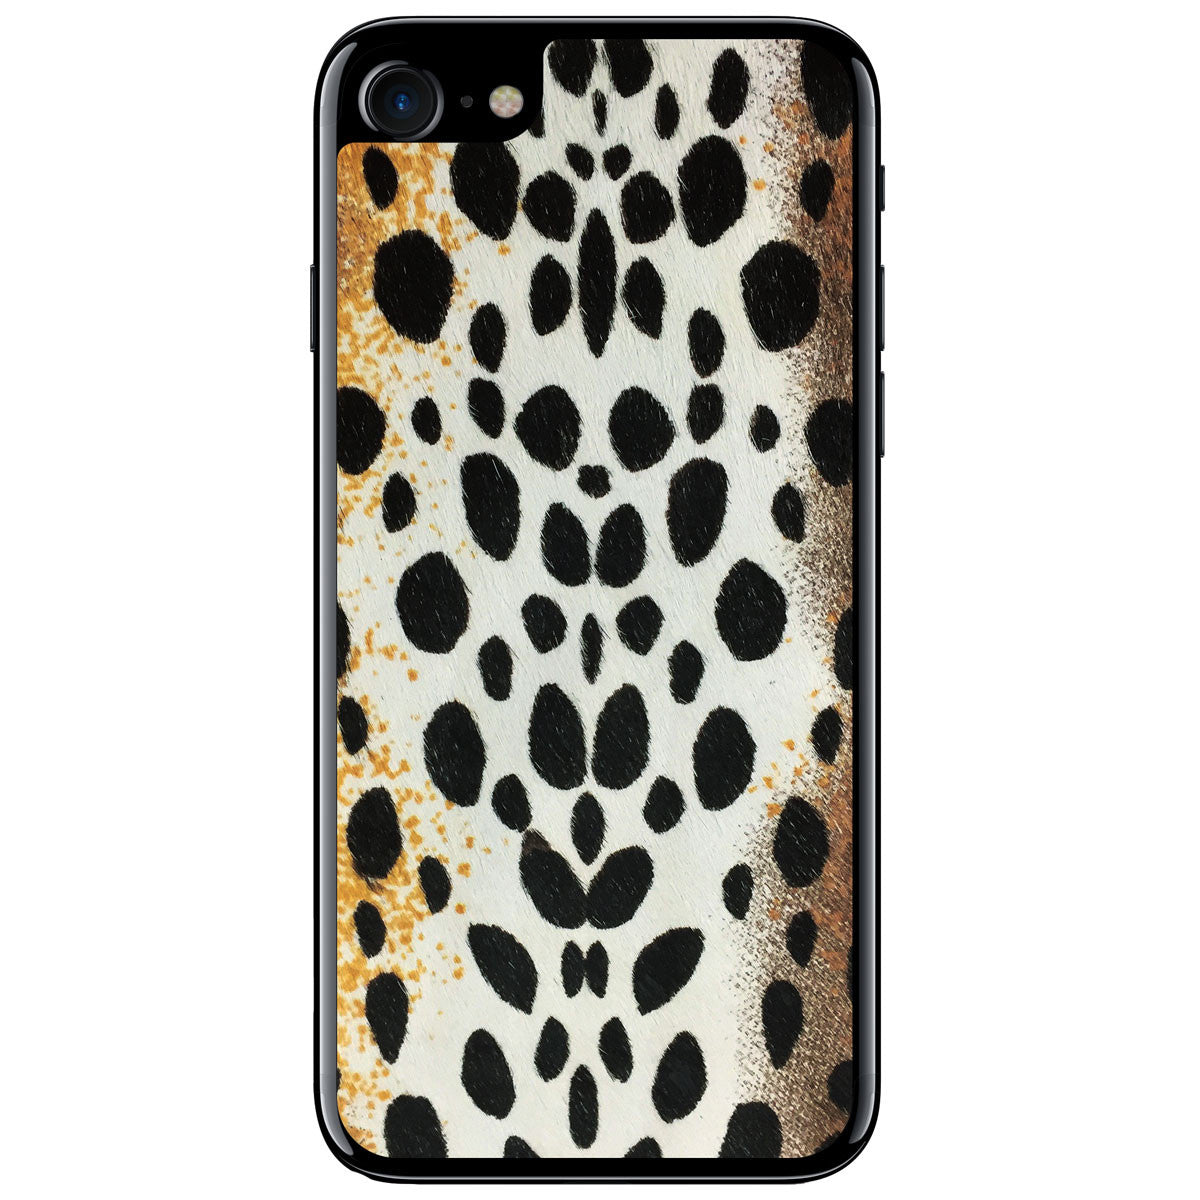 White Cheetah Print Pony Hair iPhone 7 Leather Skin